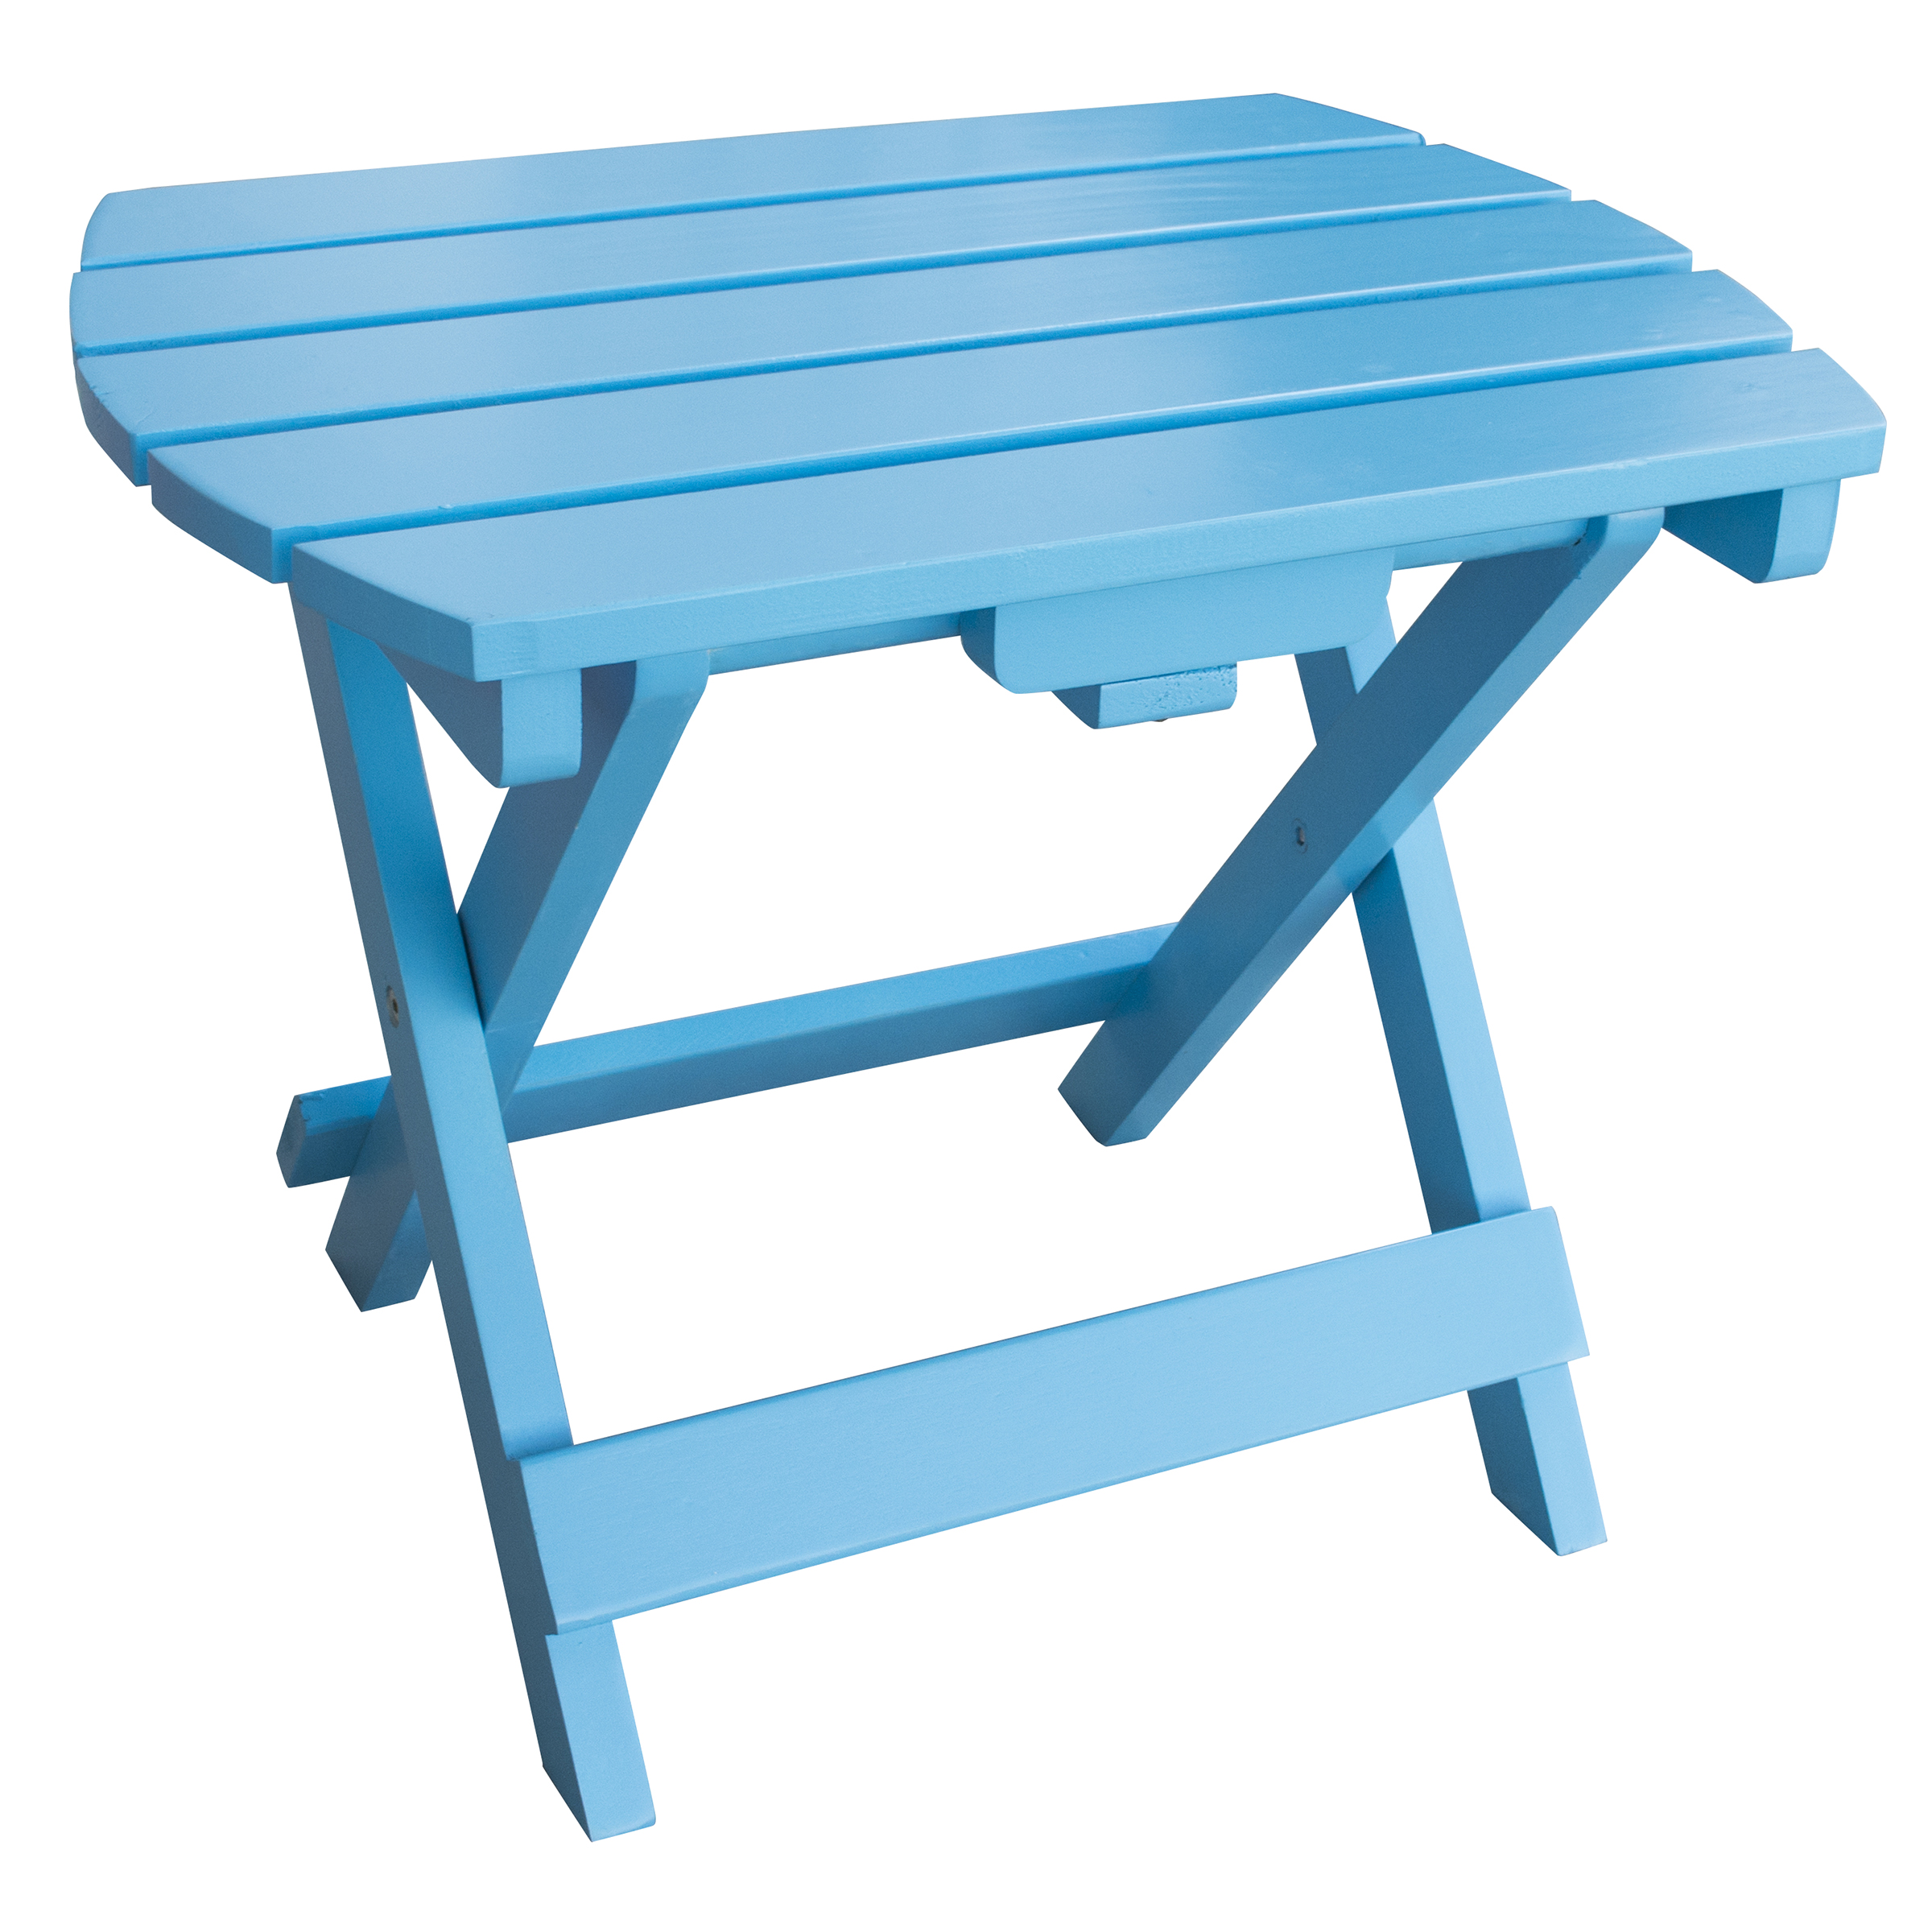 Solid Wood Adirondack Folding Side Table with Painted Finish - Aruba Blue